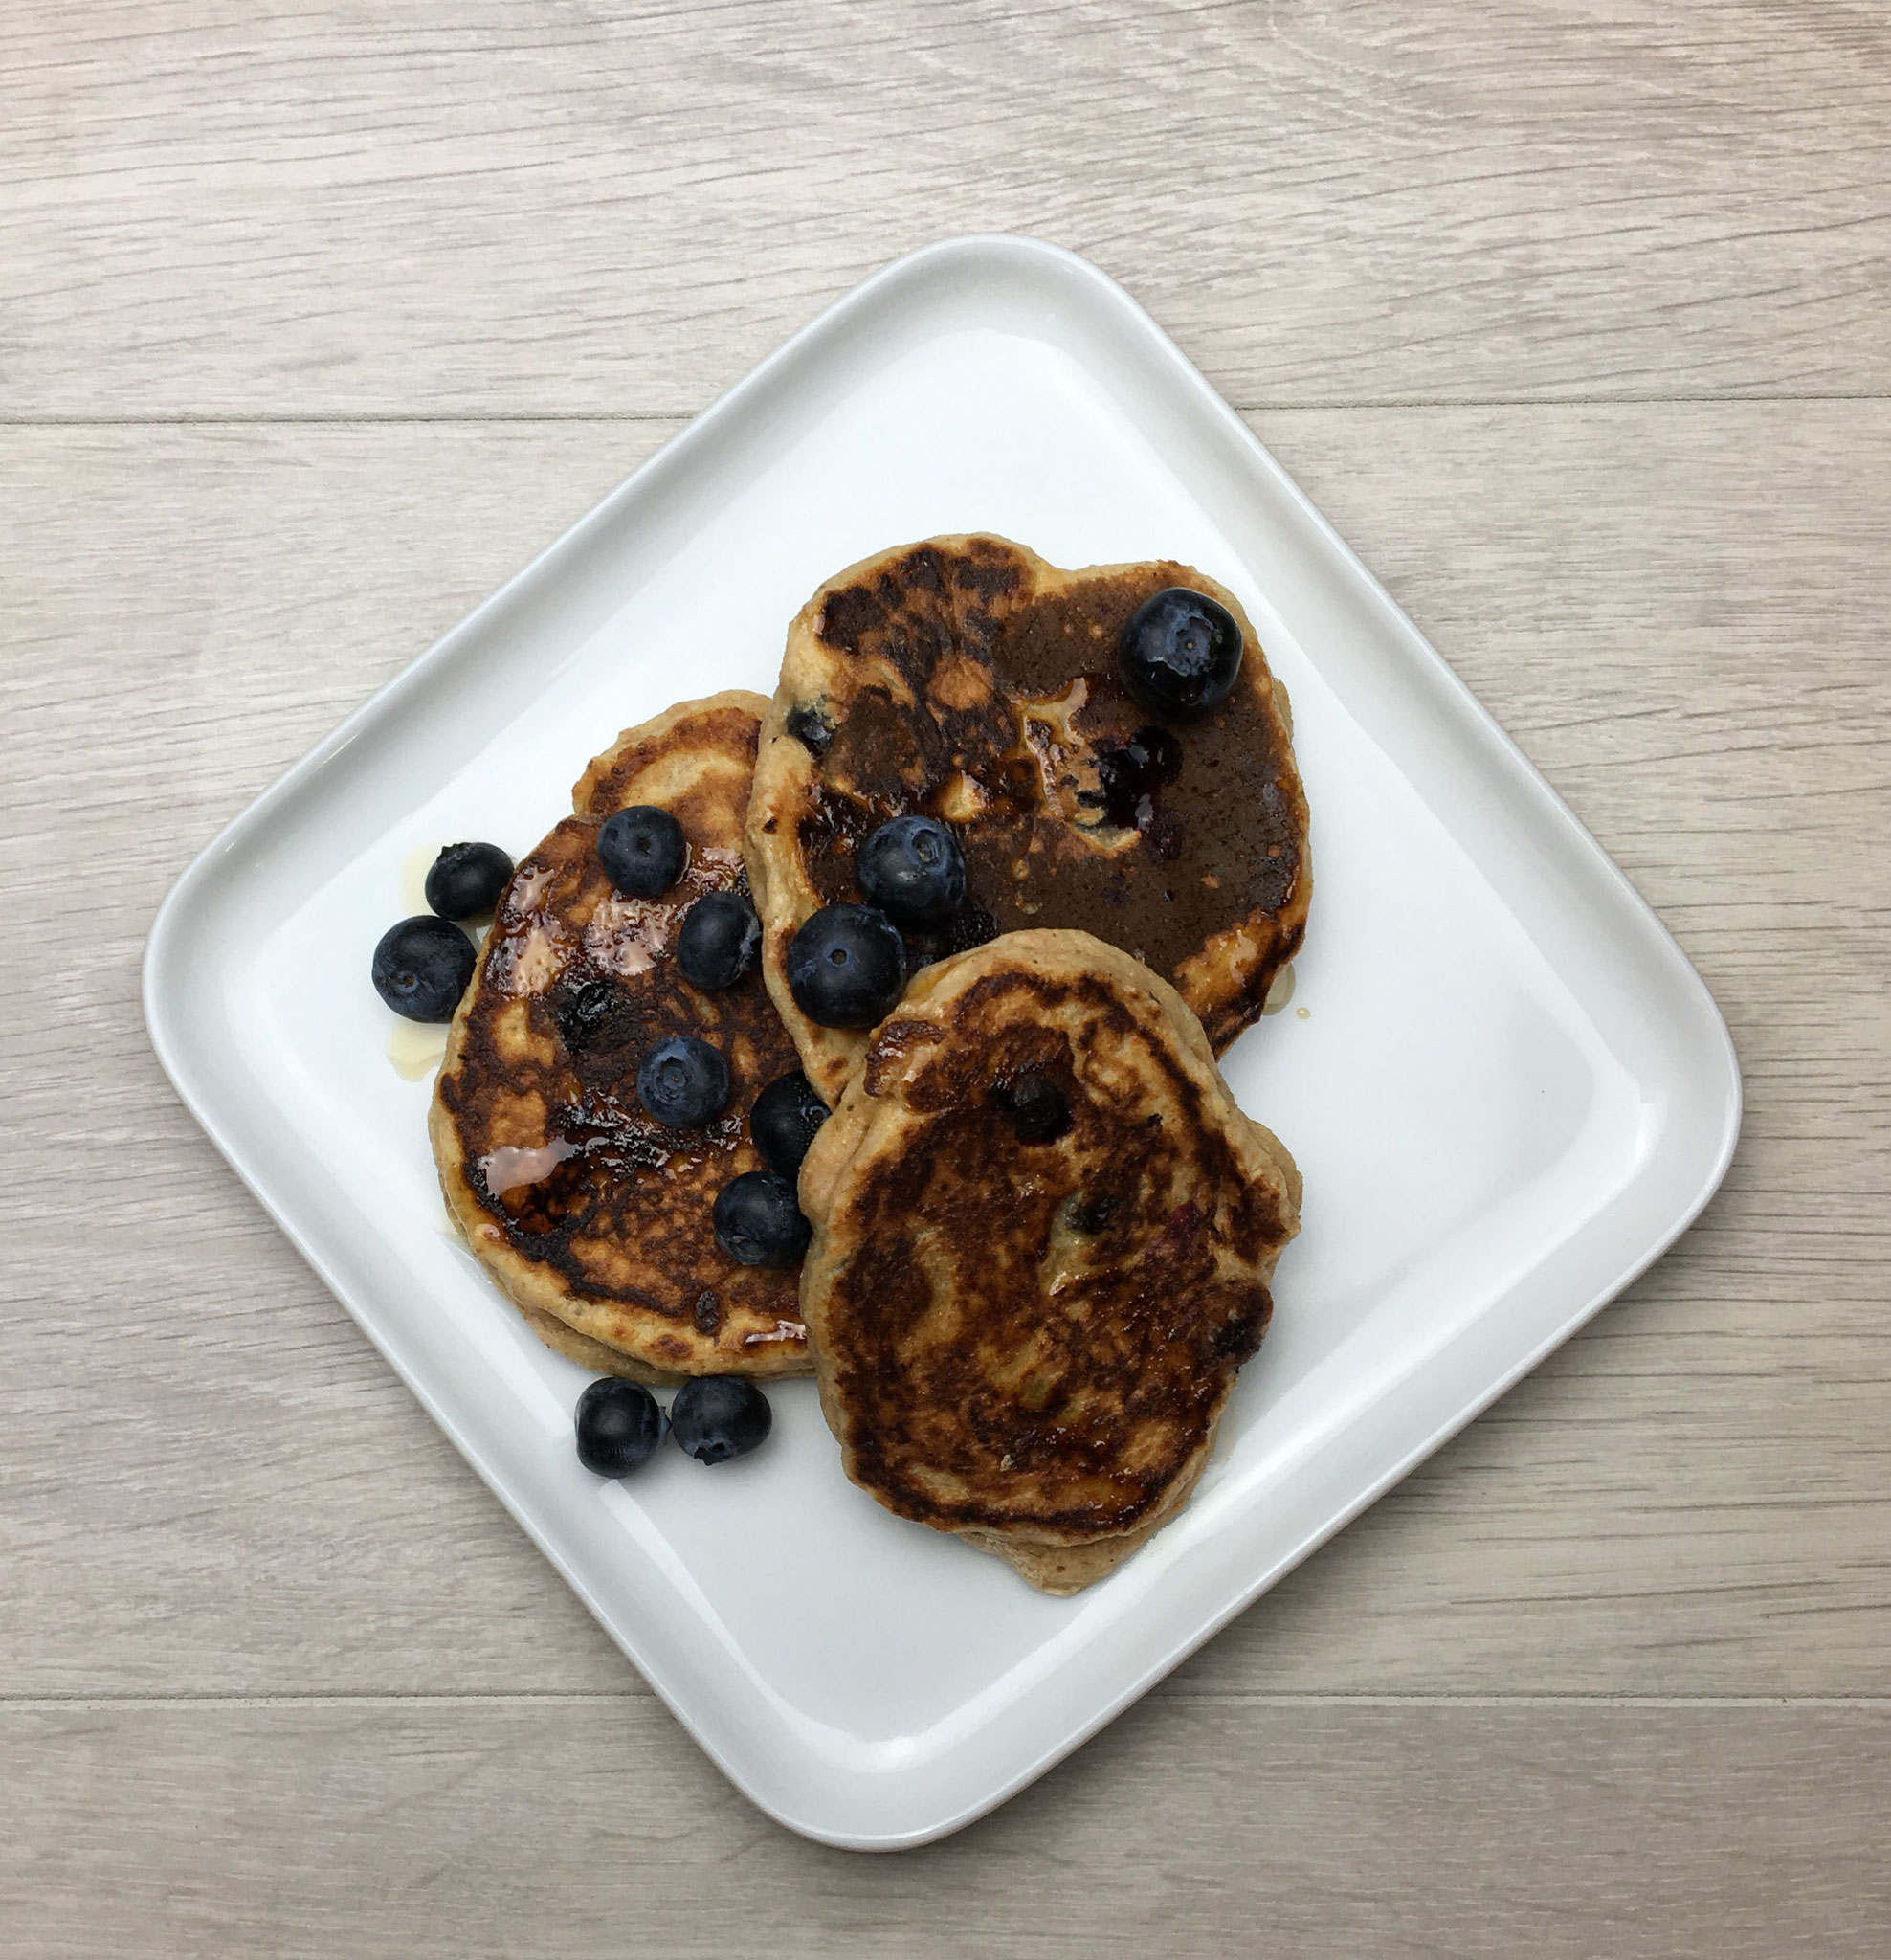 Blueberry Pancakes - 320 Kcals